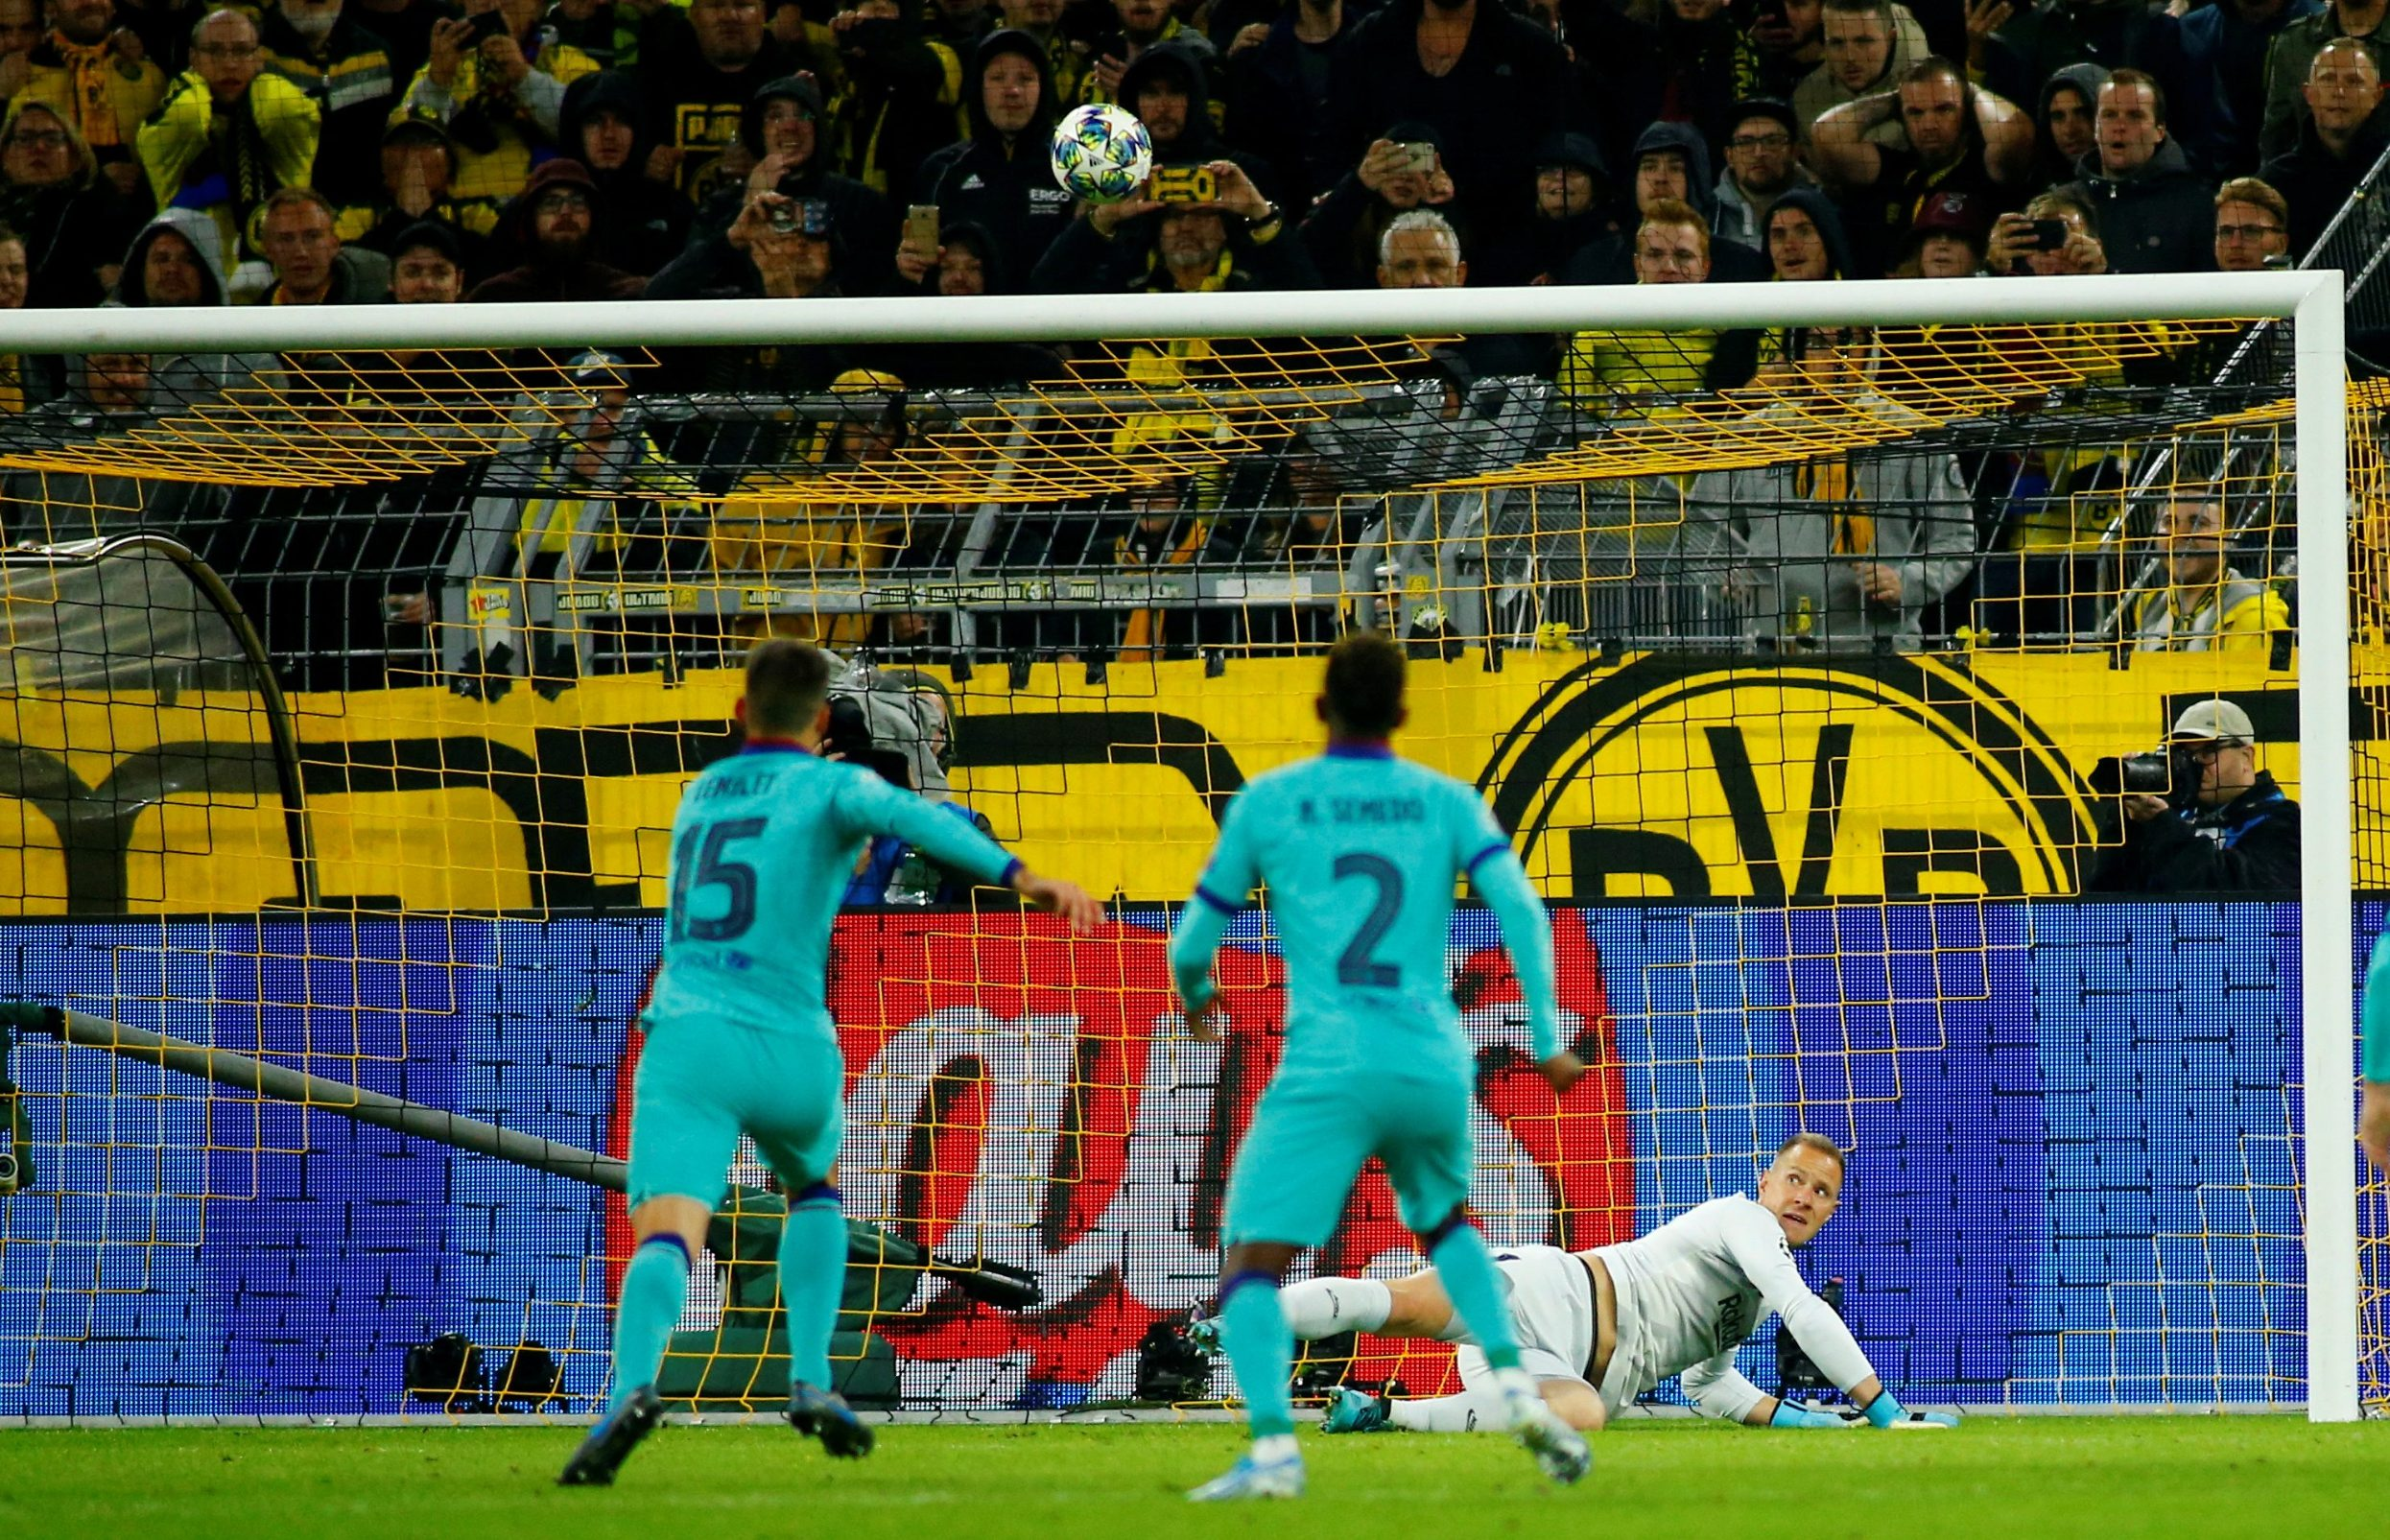 Soccer Football - Champions League - Group F - Borussia Dortmund v FC Barcelona - Signal Iduna Park, Dortmund, Germany - September 17, 2019  Borussia Dortmund's Marco Reus has his penalty saved by Barcelona's Marc-Andre ter Stegen   REUTERS/Thilo Schmuelgen